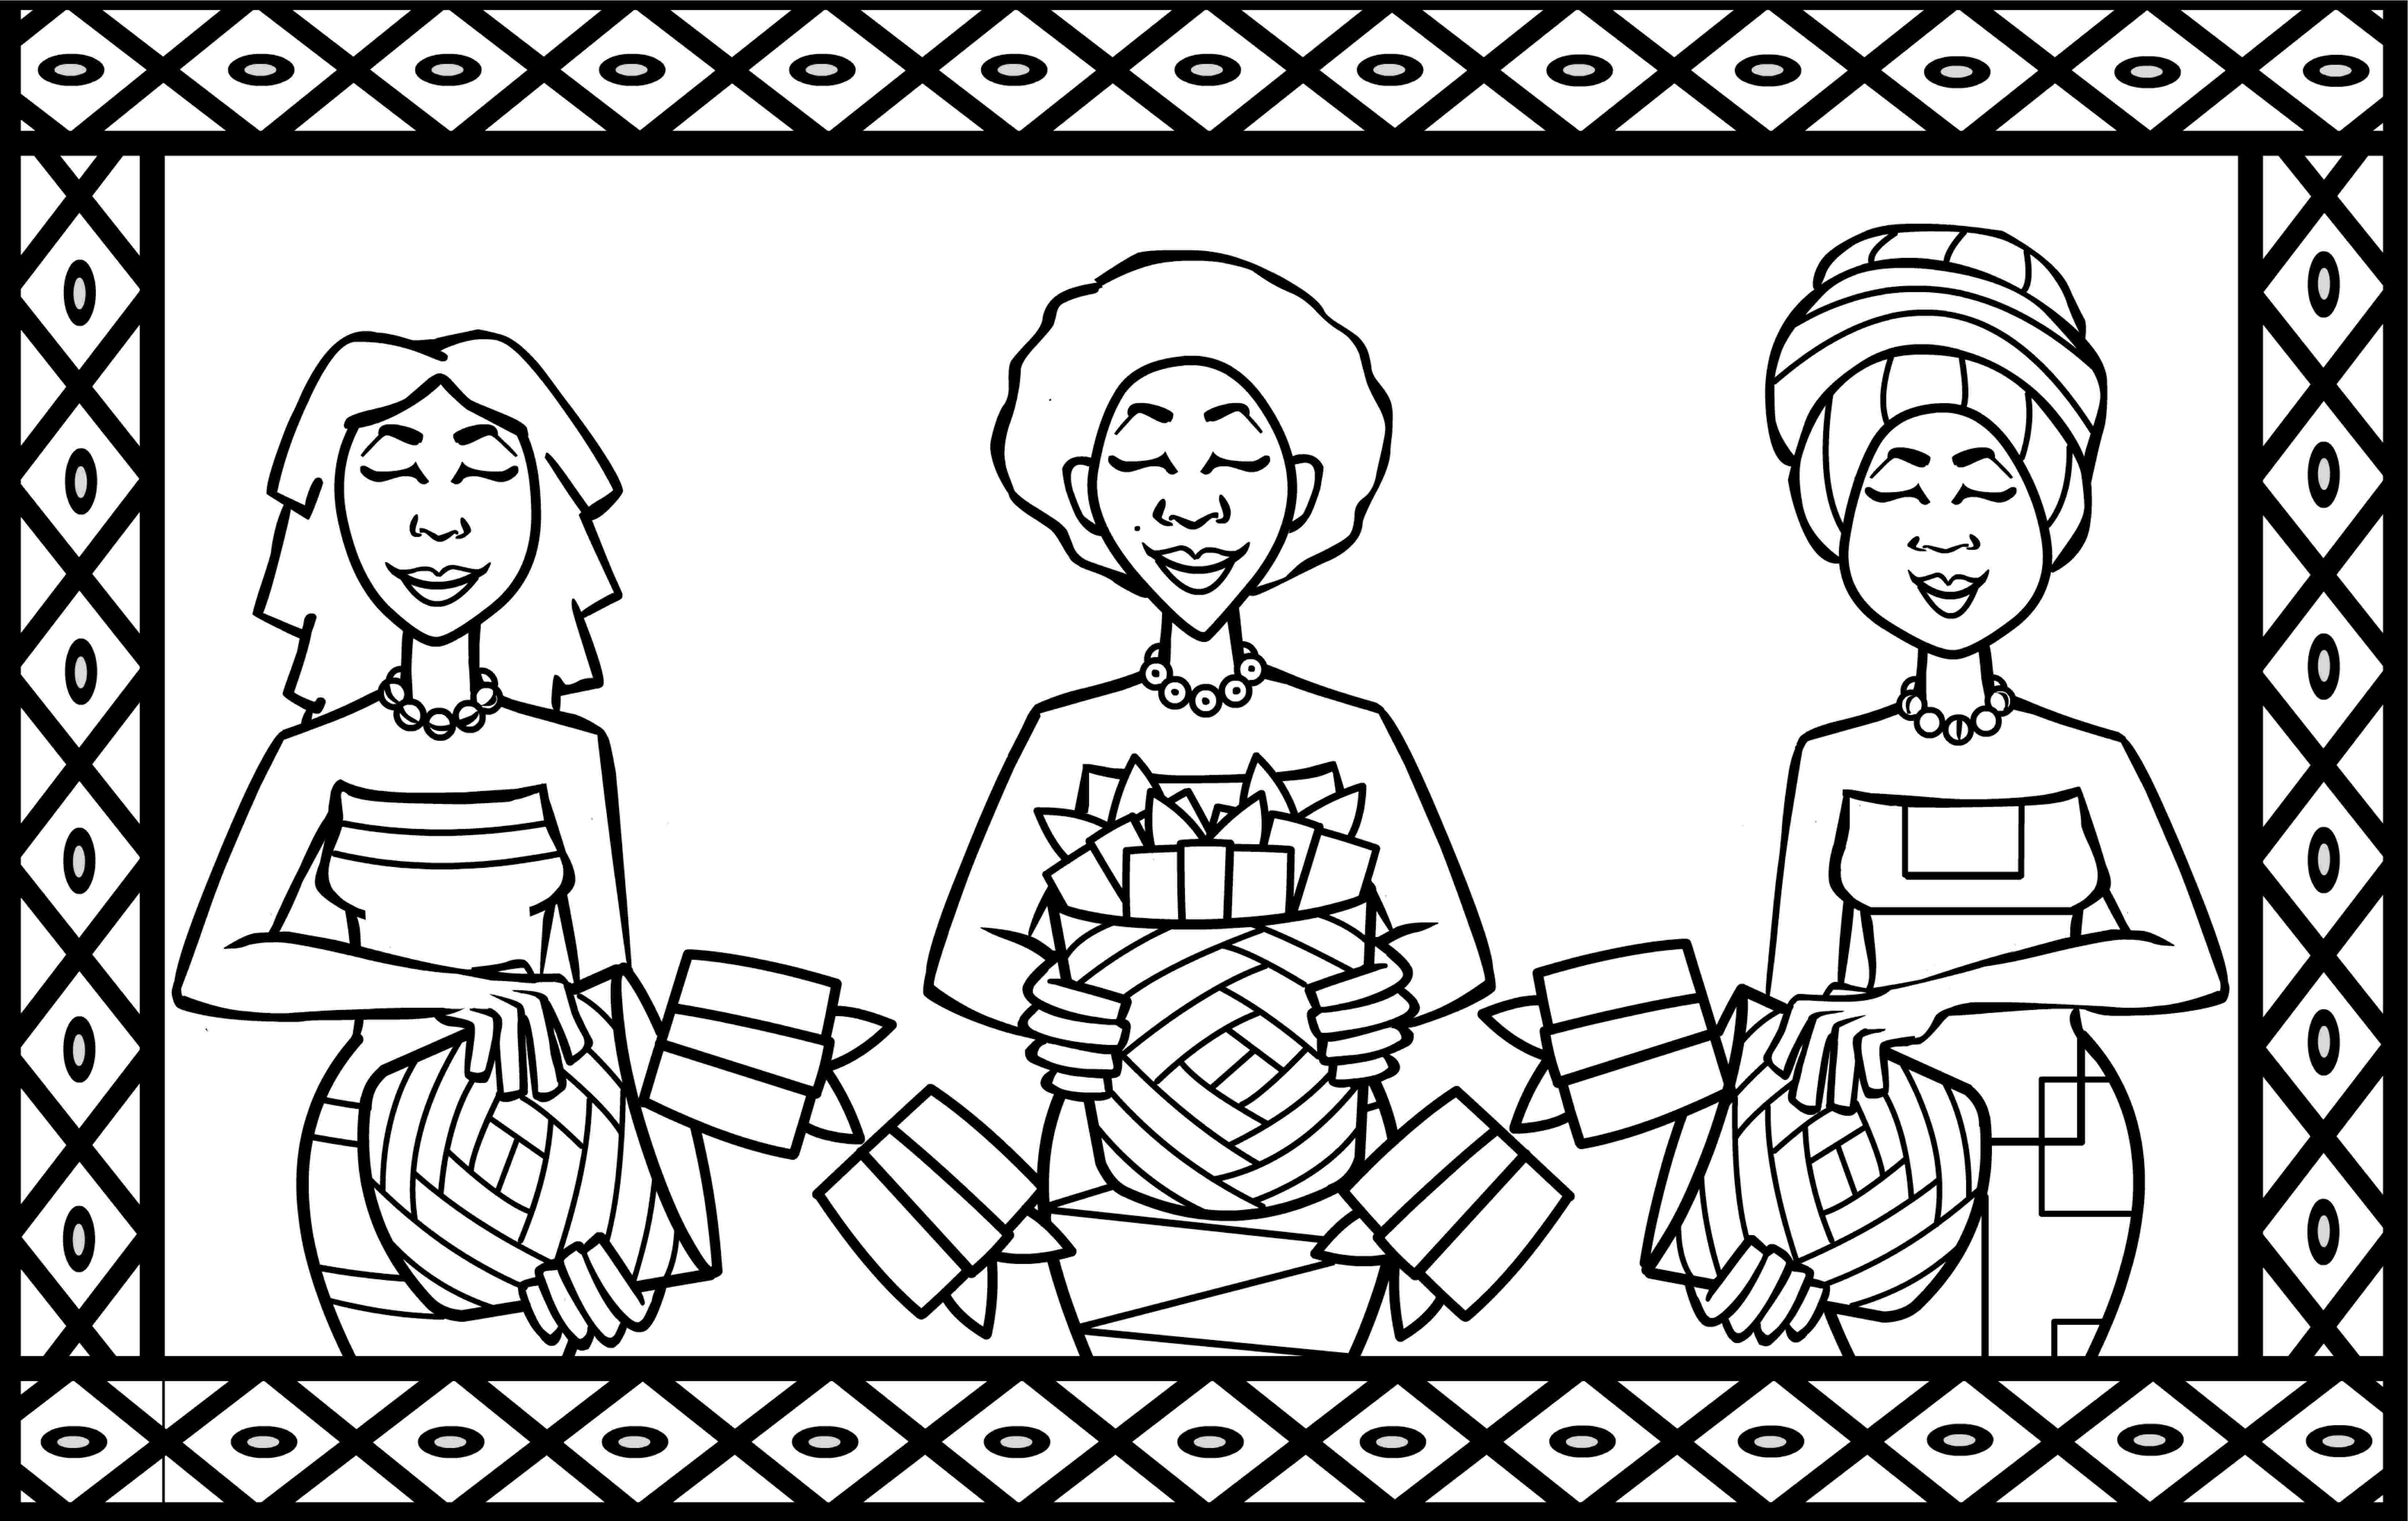 South African Coloring Pages South Africa Officially The Republic Of South Africa Rsa Is In 2020 Mothers Day Coloring Pages Coloring Pages Africa